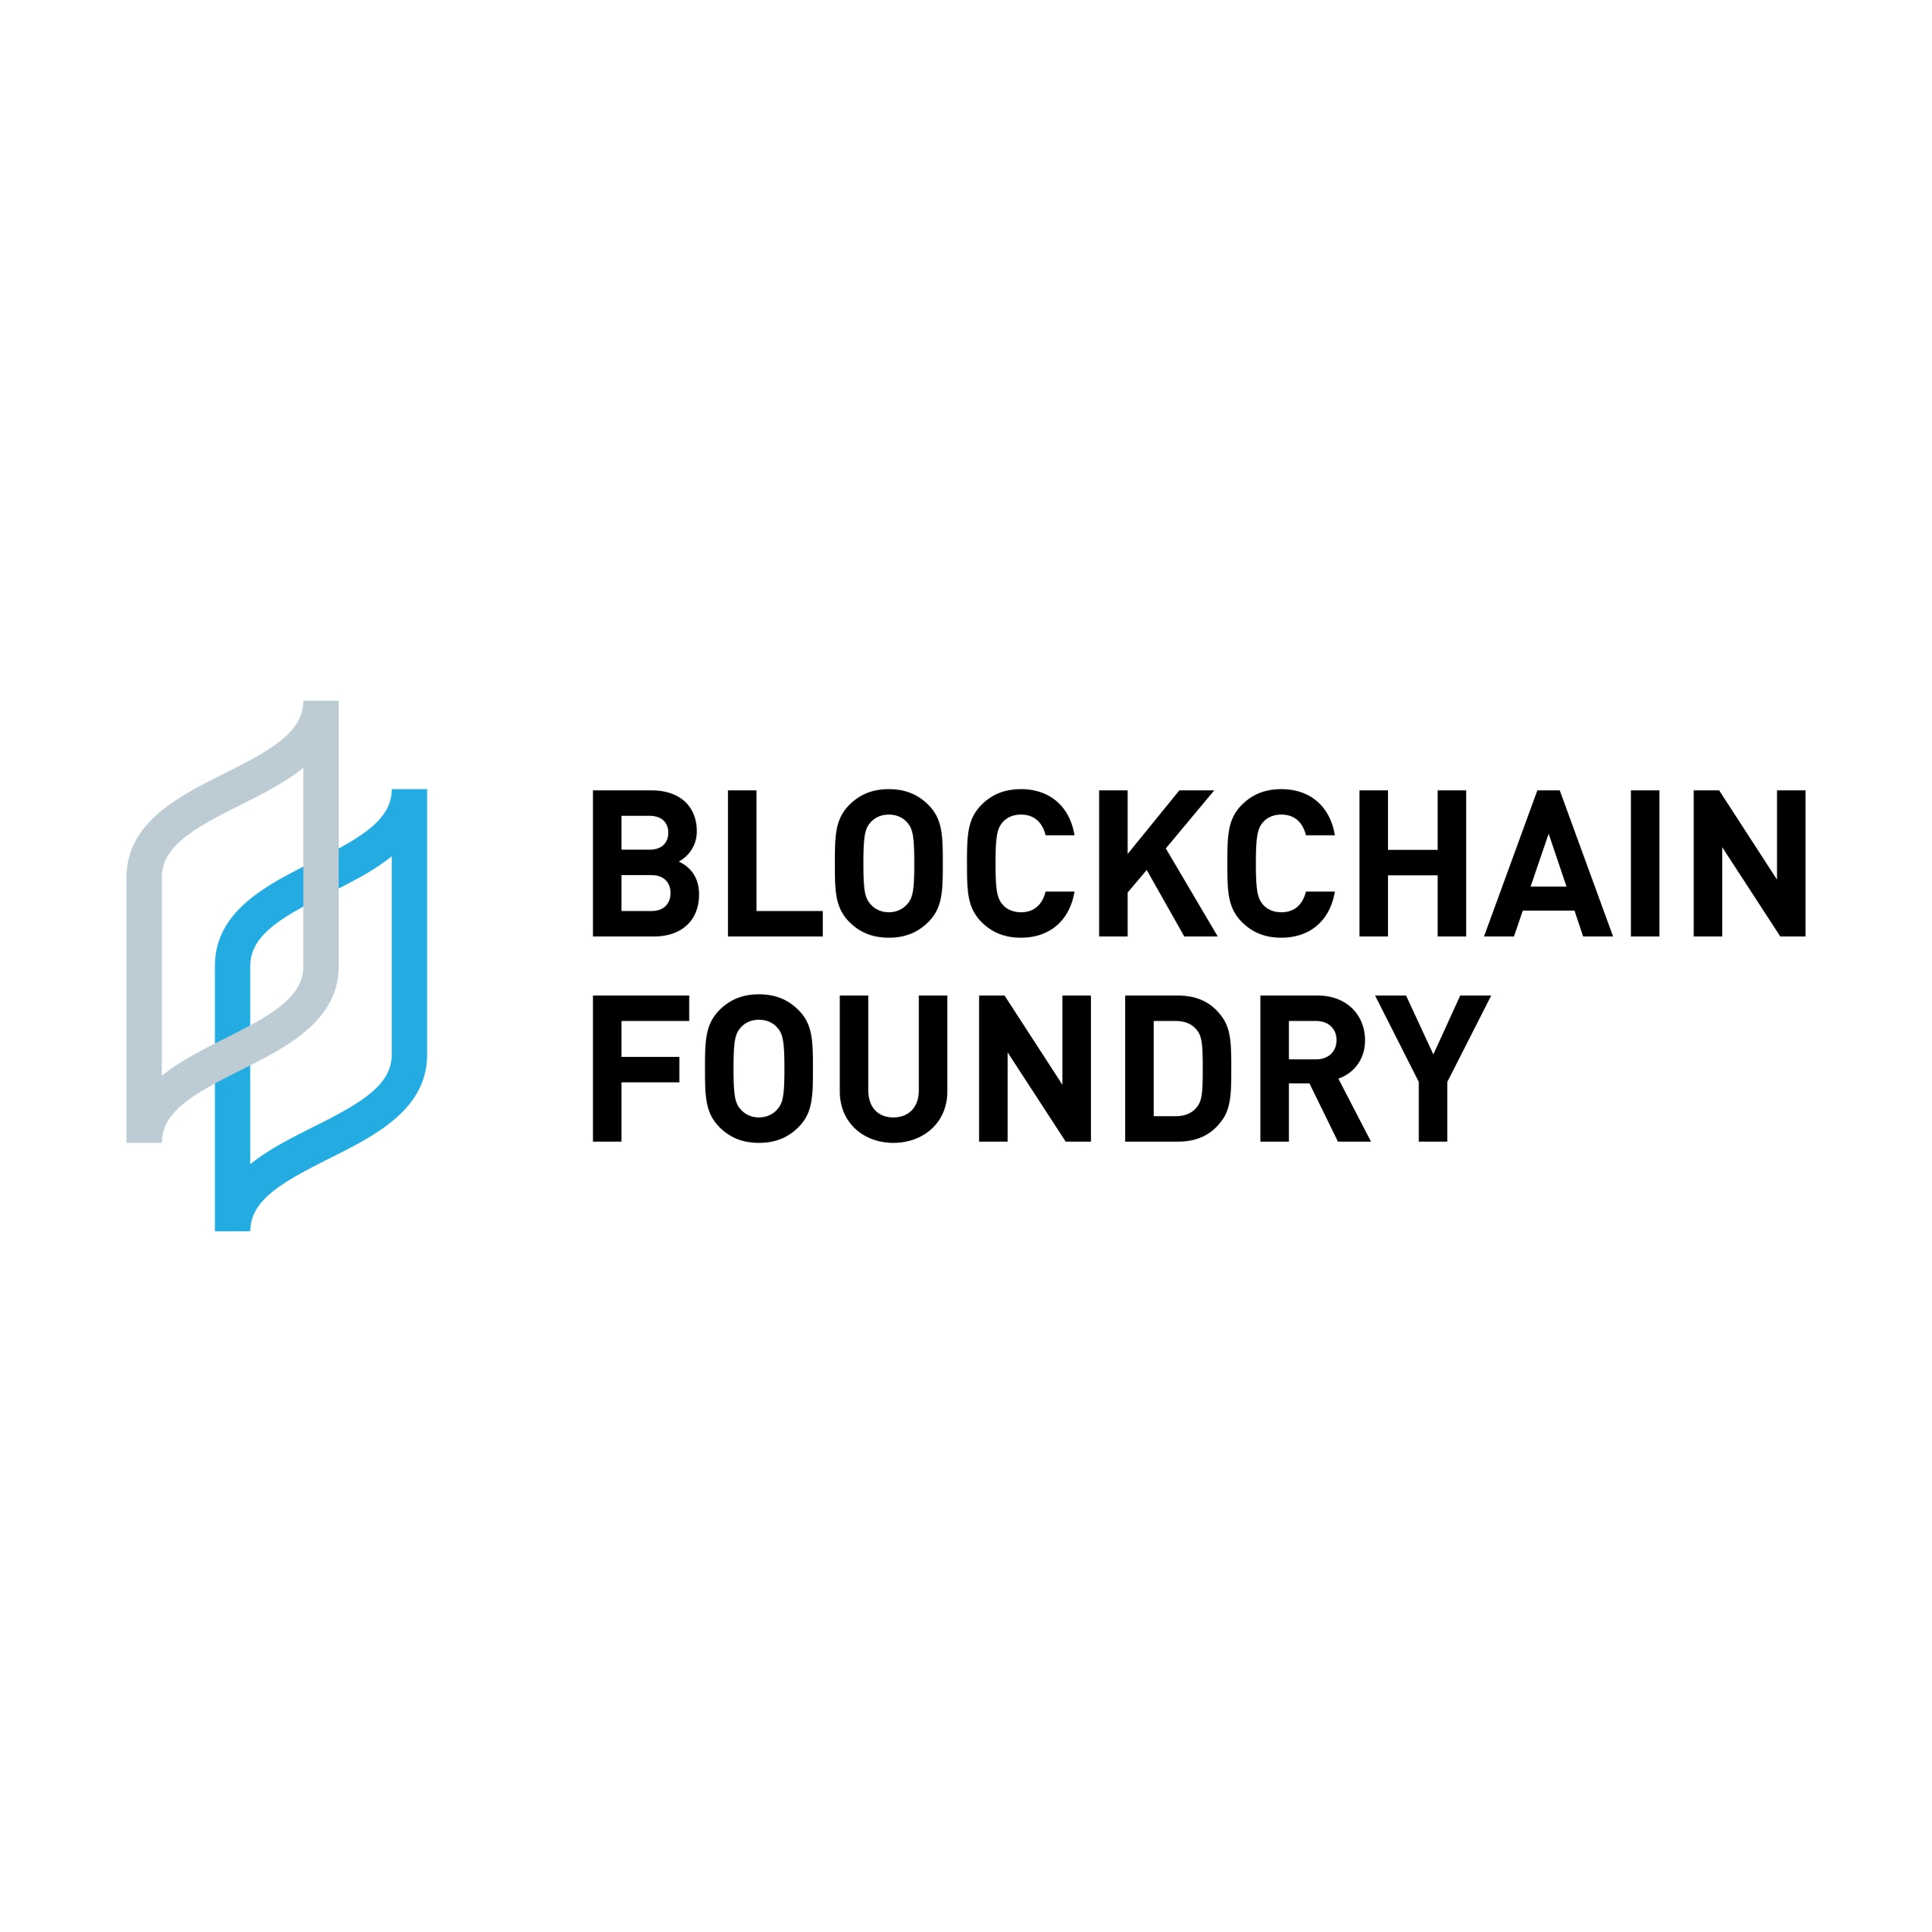 Blockchain Foundry and Matic Network Establish Partnership to Research Blockchain Interoperability